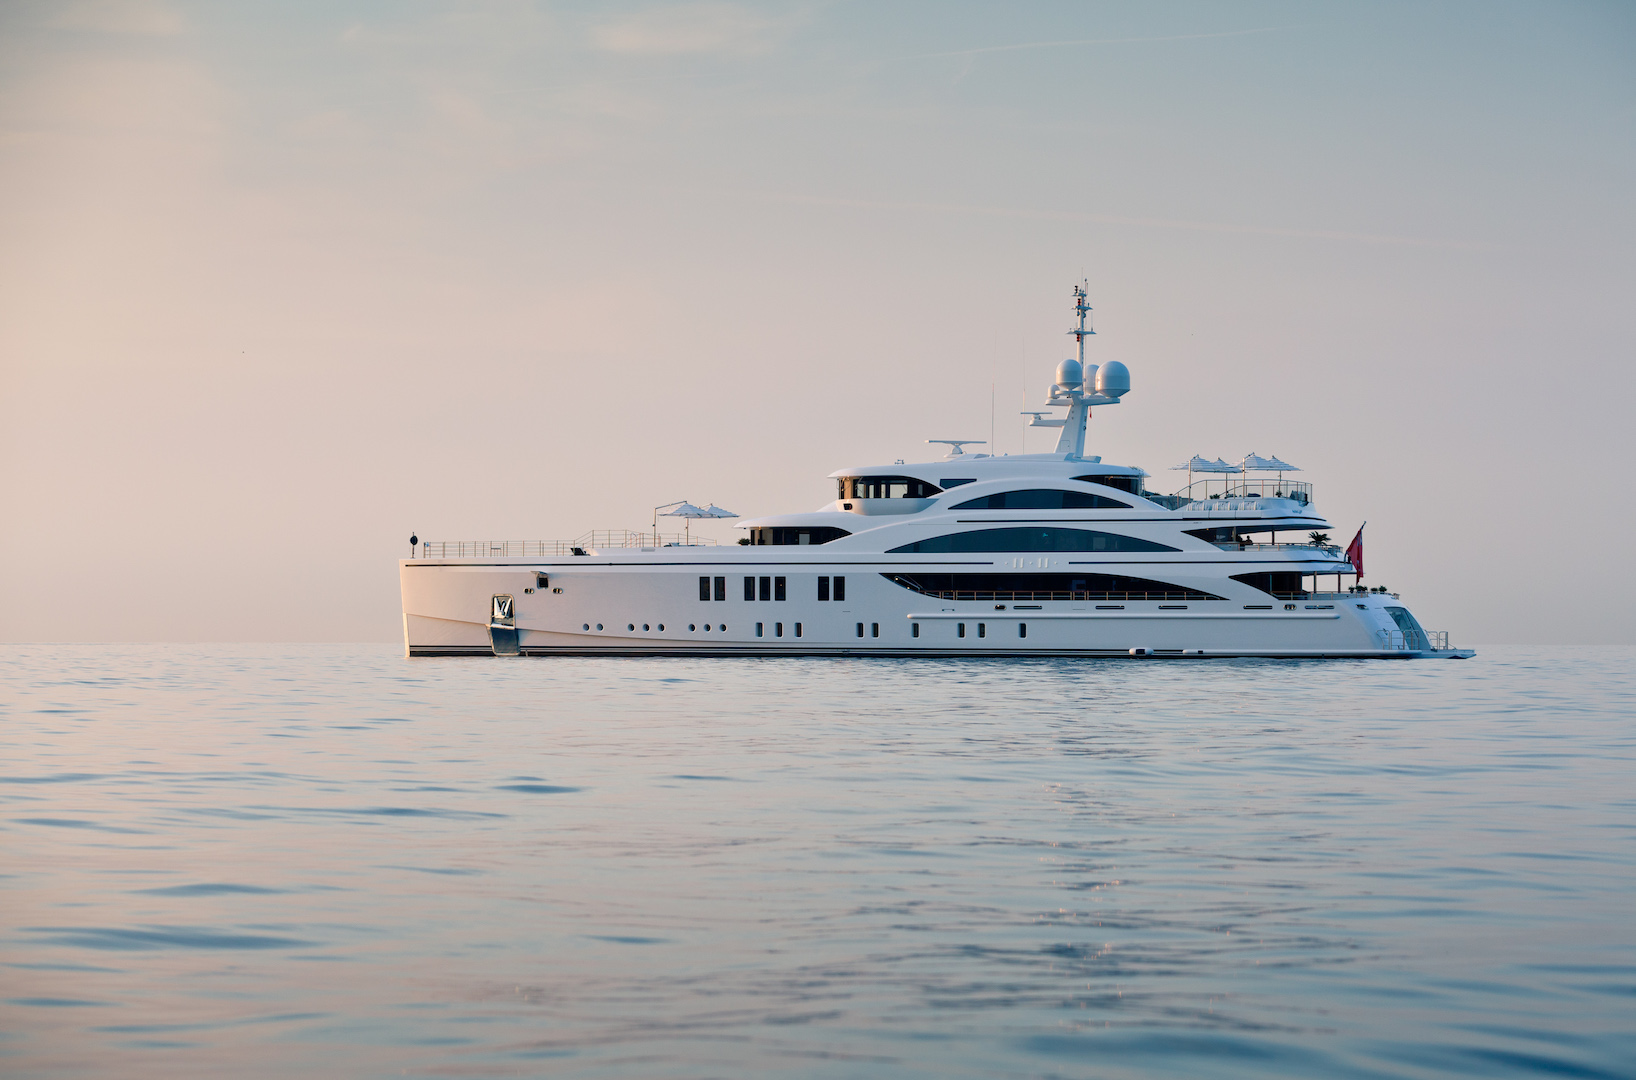 Beauty and elegance in superyacht 11.11 - Photo © Jeff Brown